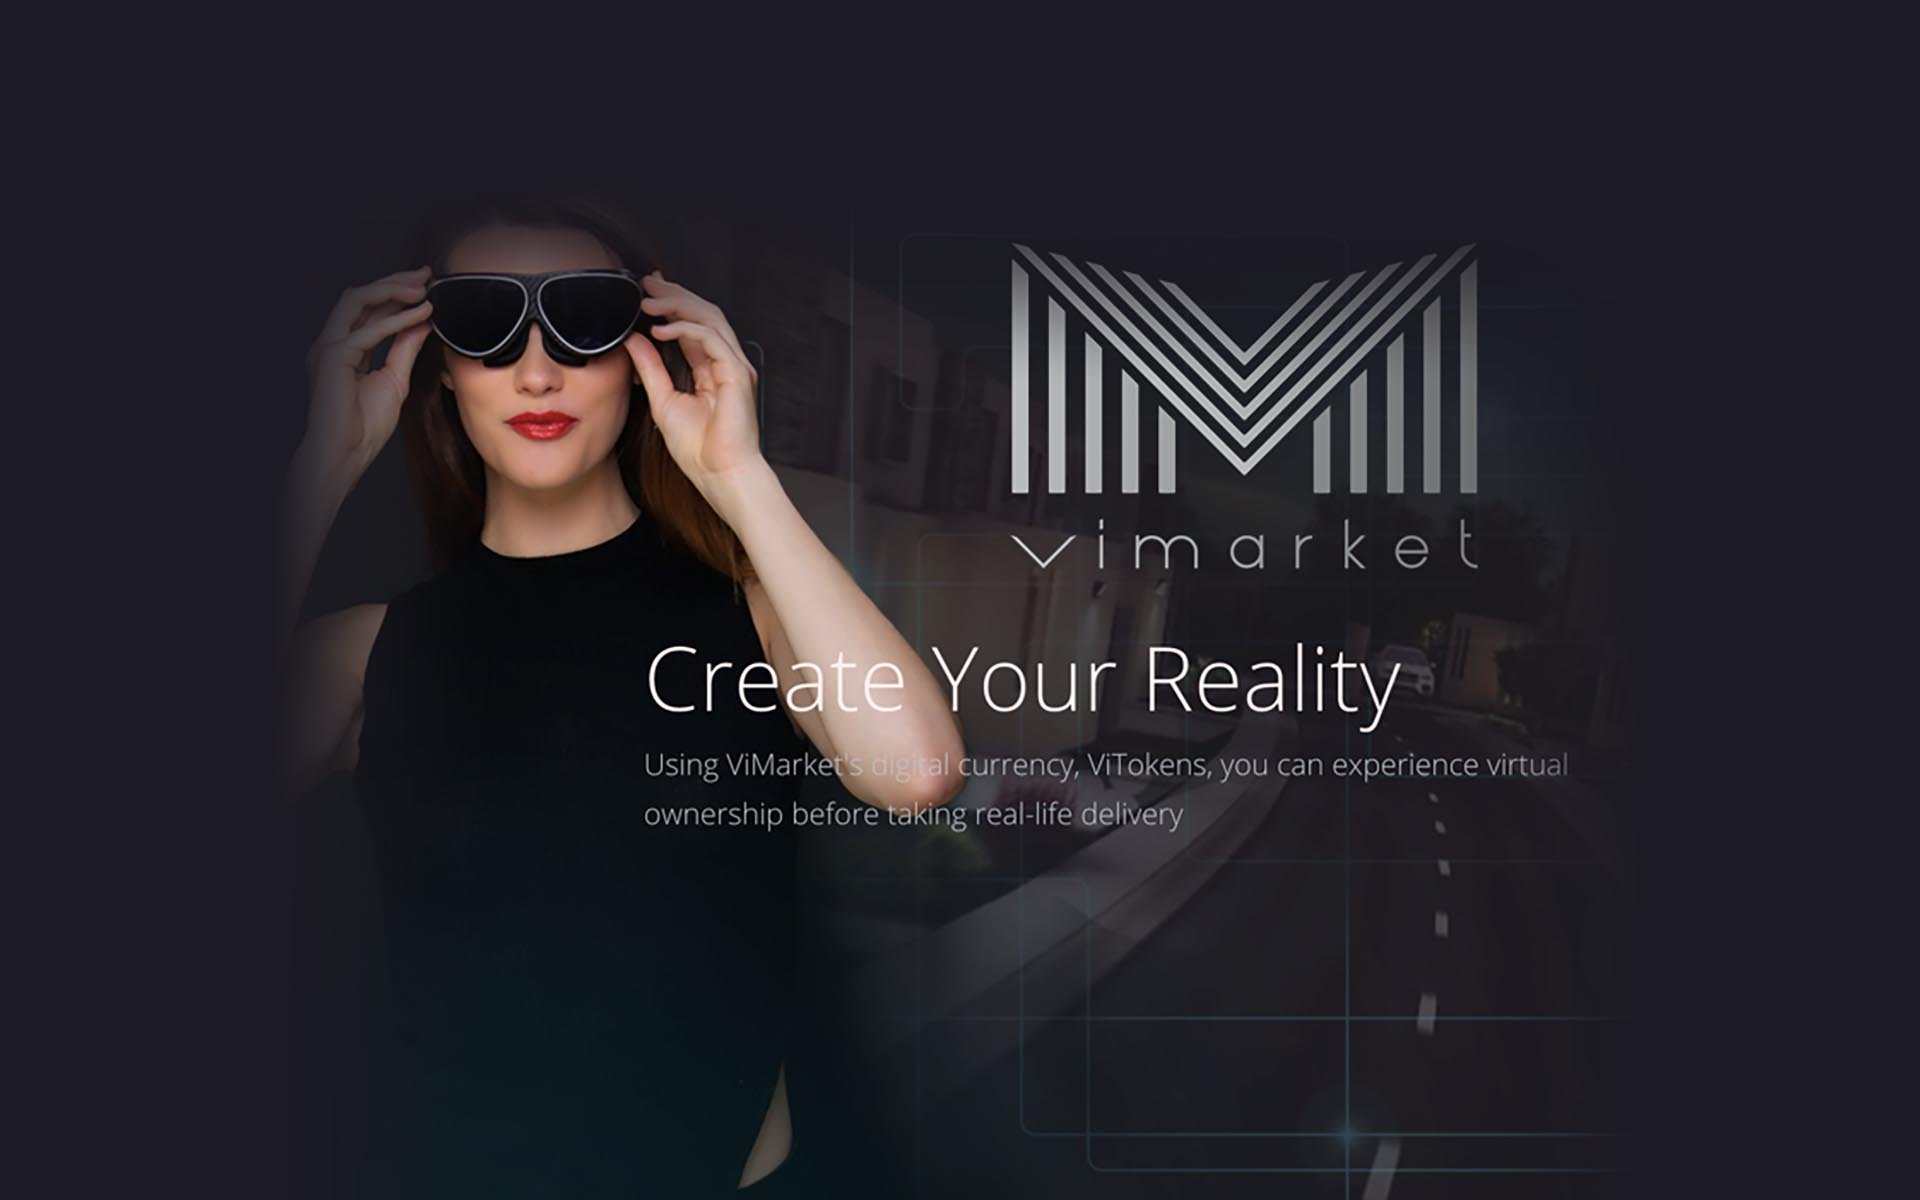 E-Commerce Gamechanger ViMarket Announces the Start of its ViTokens Pre-Sale